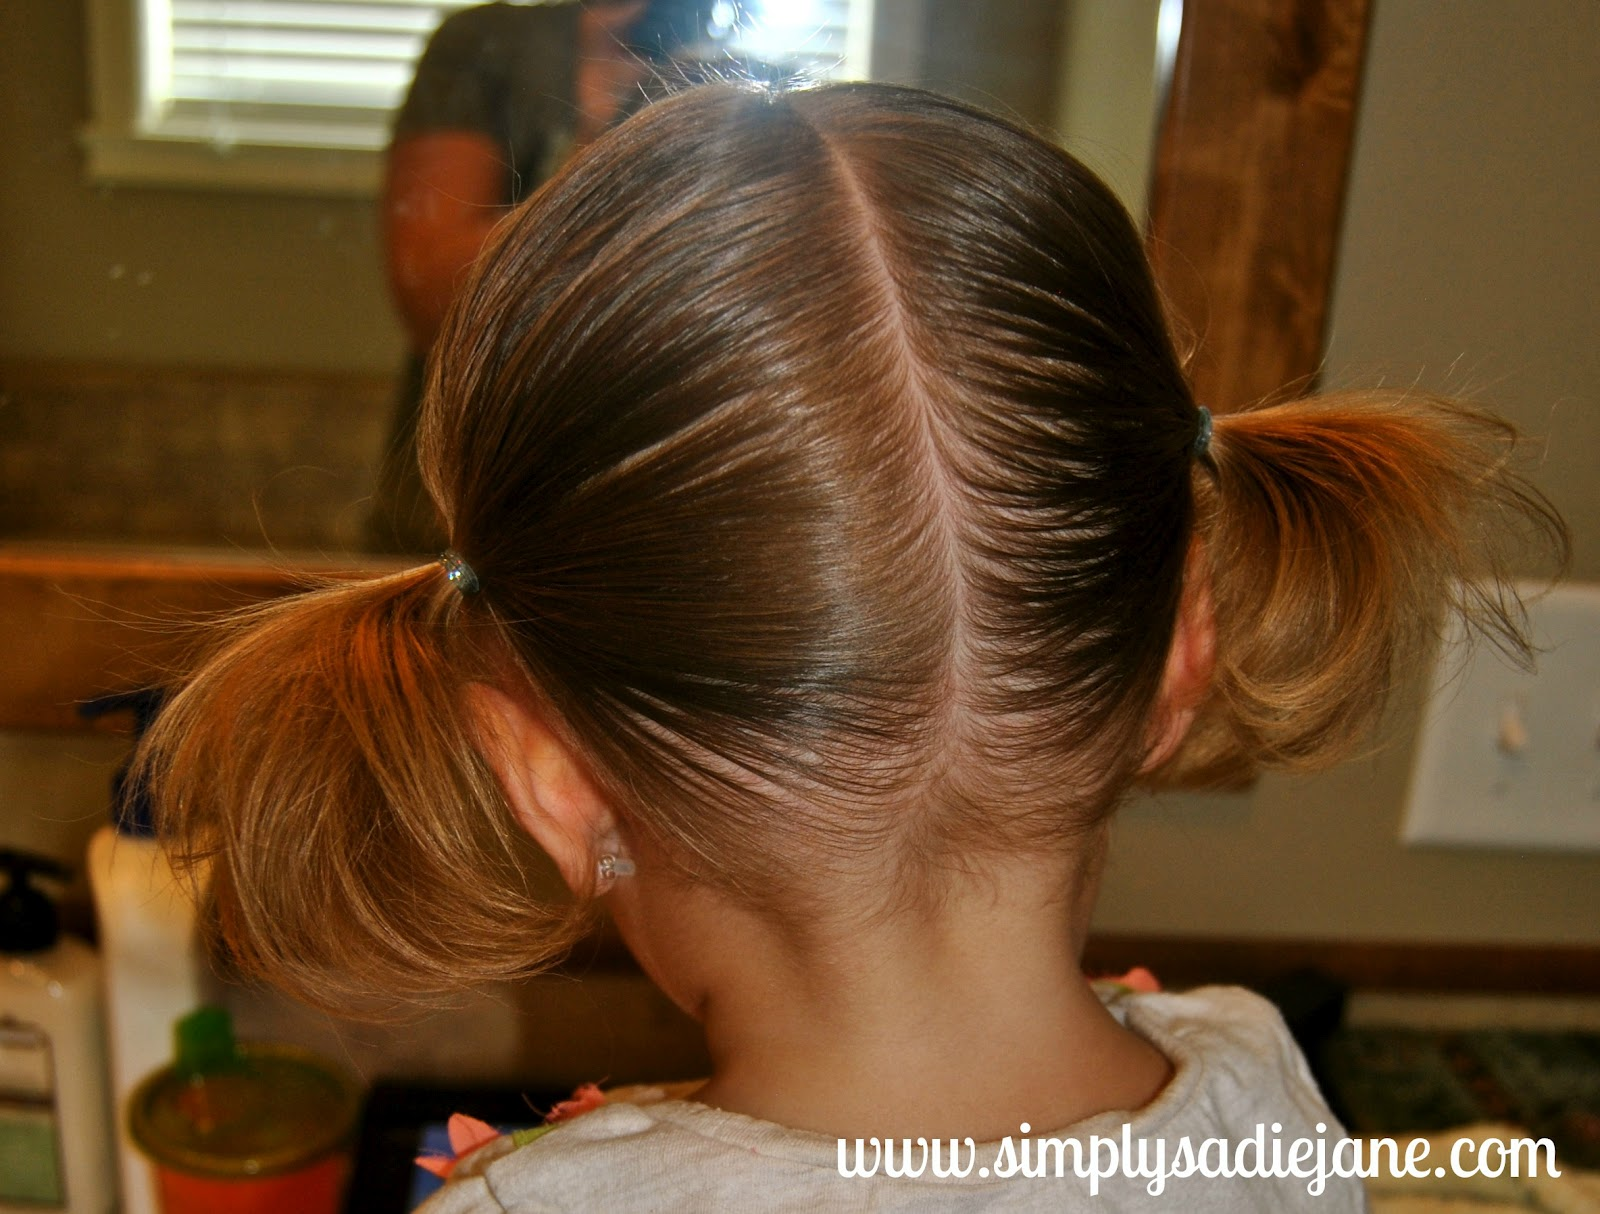 22 More Fun And Creative Toddler Hairstyles